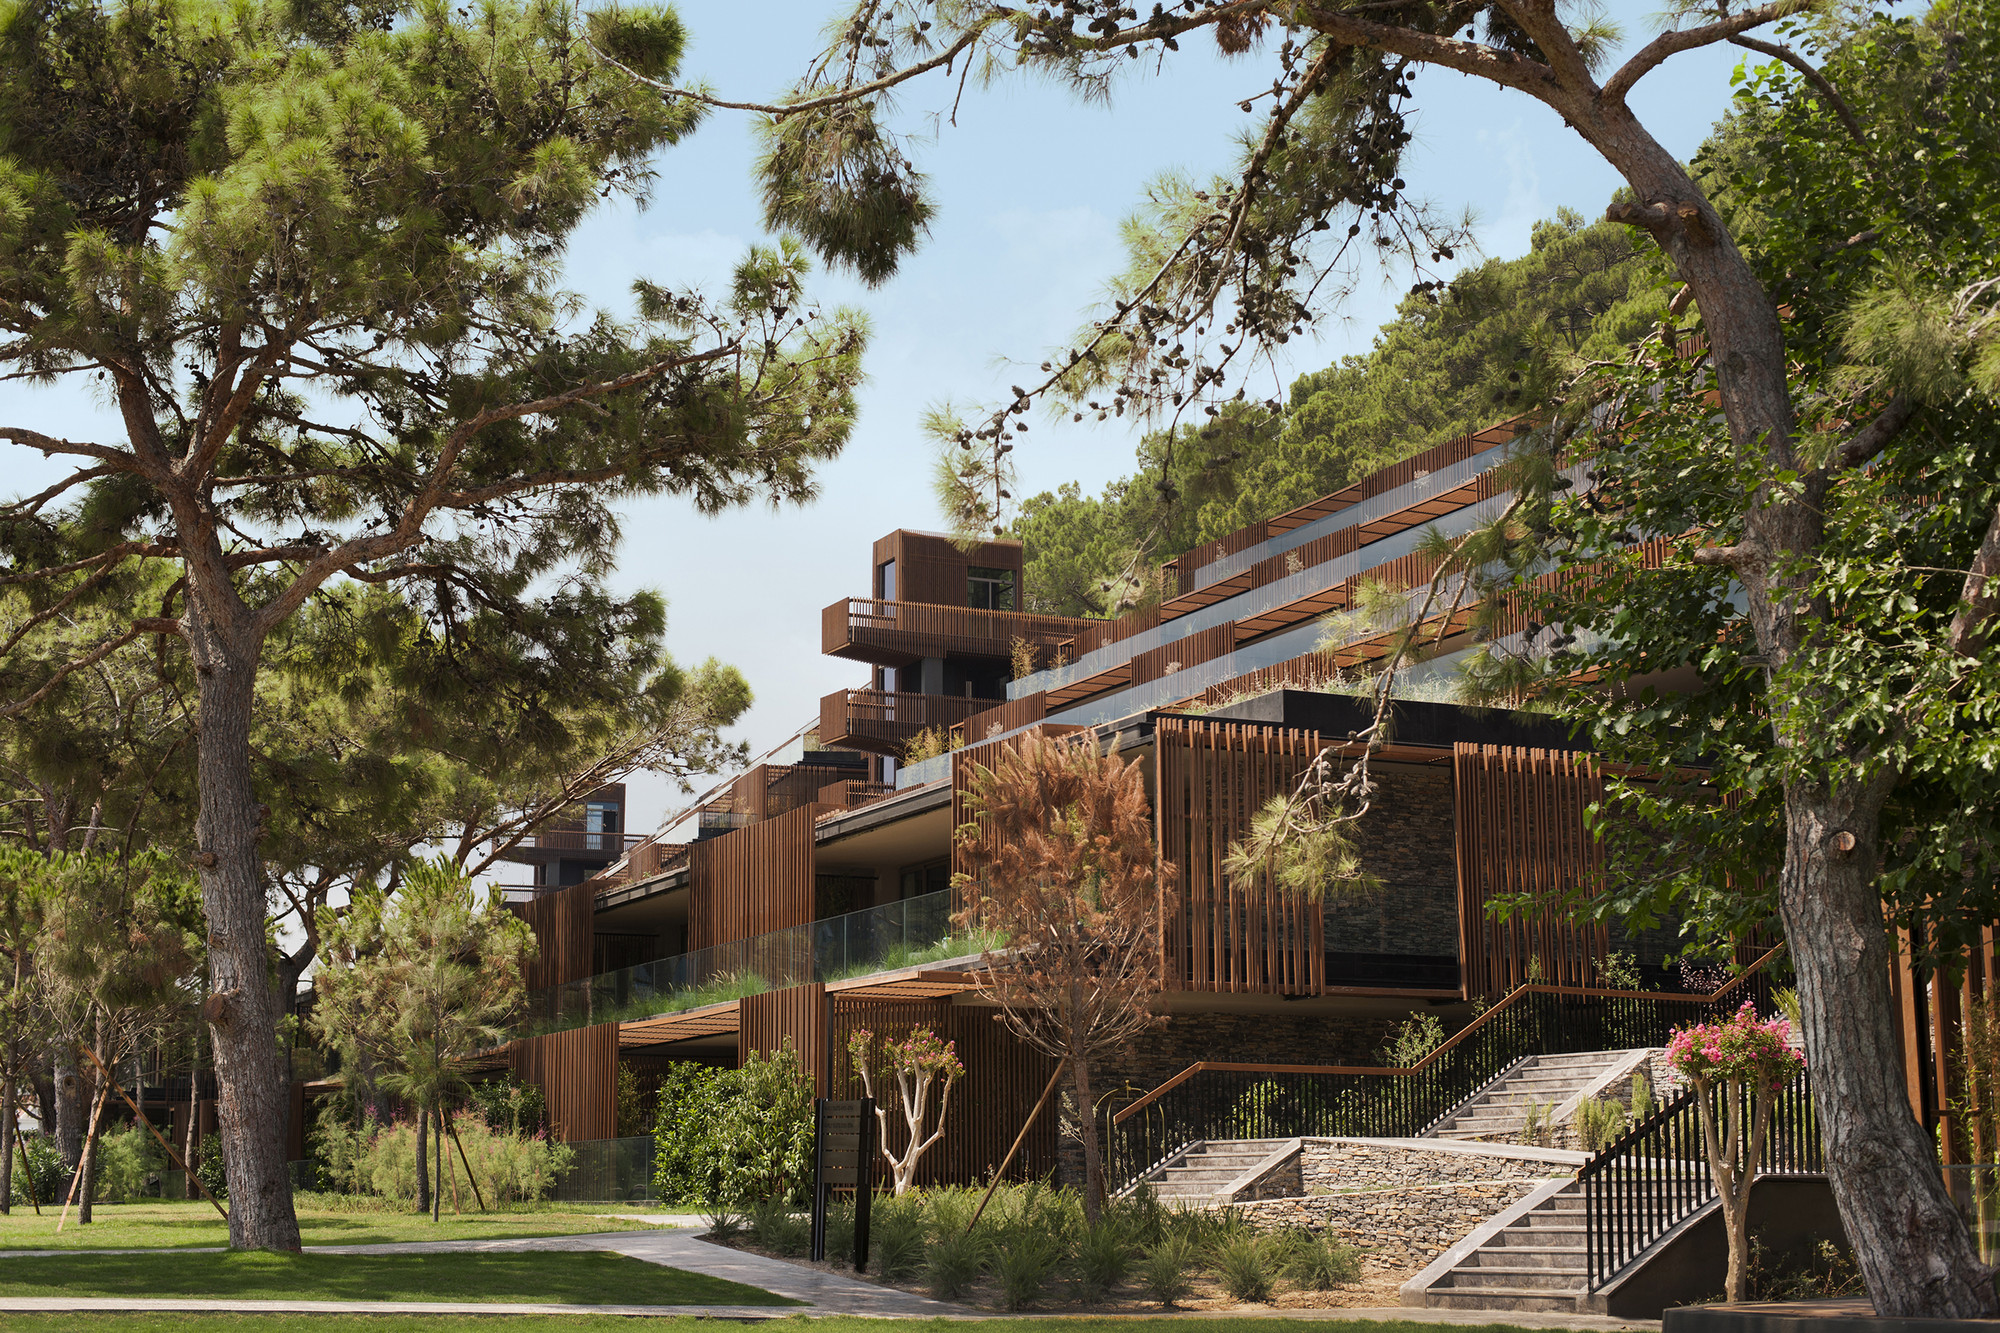 Maxx Royal Kemer Hotel  / Baraka Architects, Courtesy of Baraka Architects